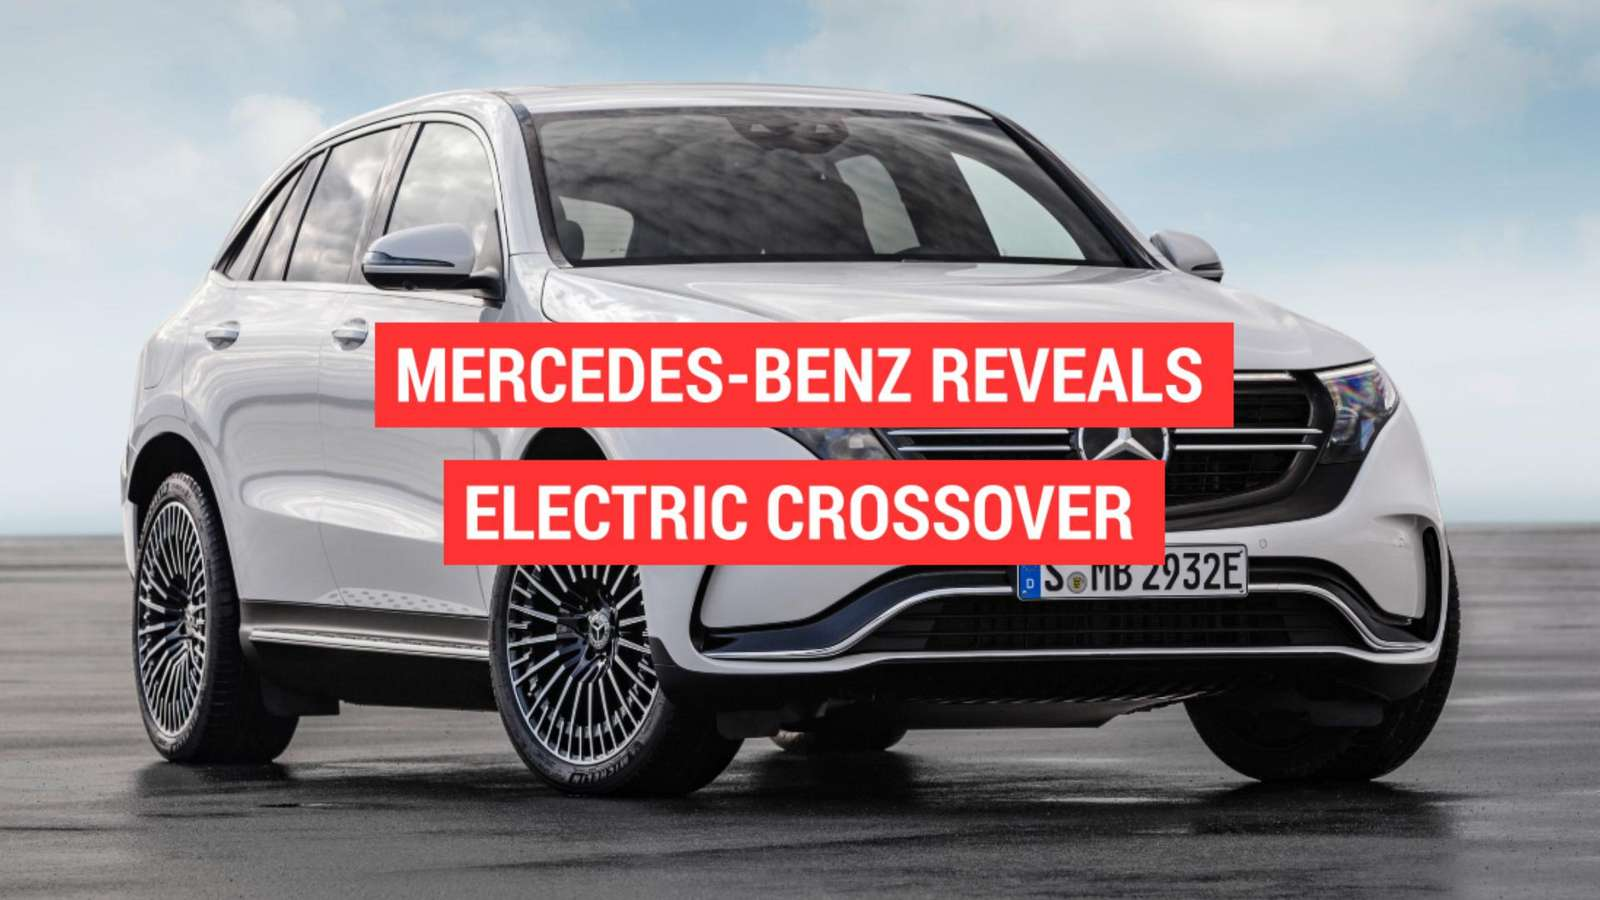 Mercedes halves EV production target due to battery shortage